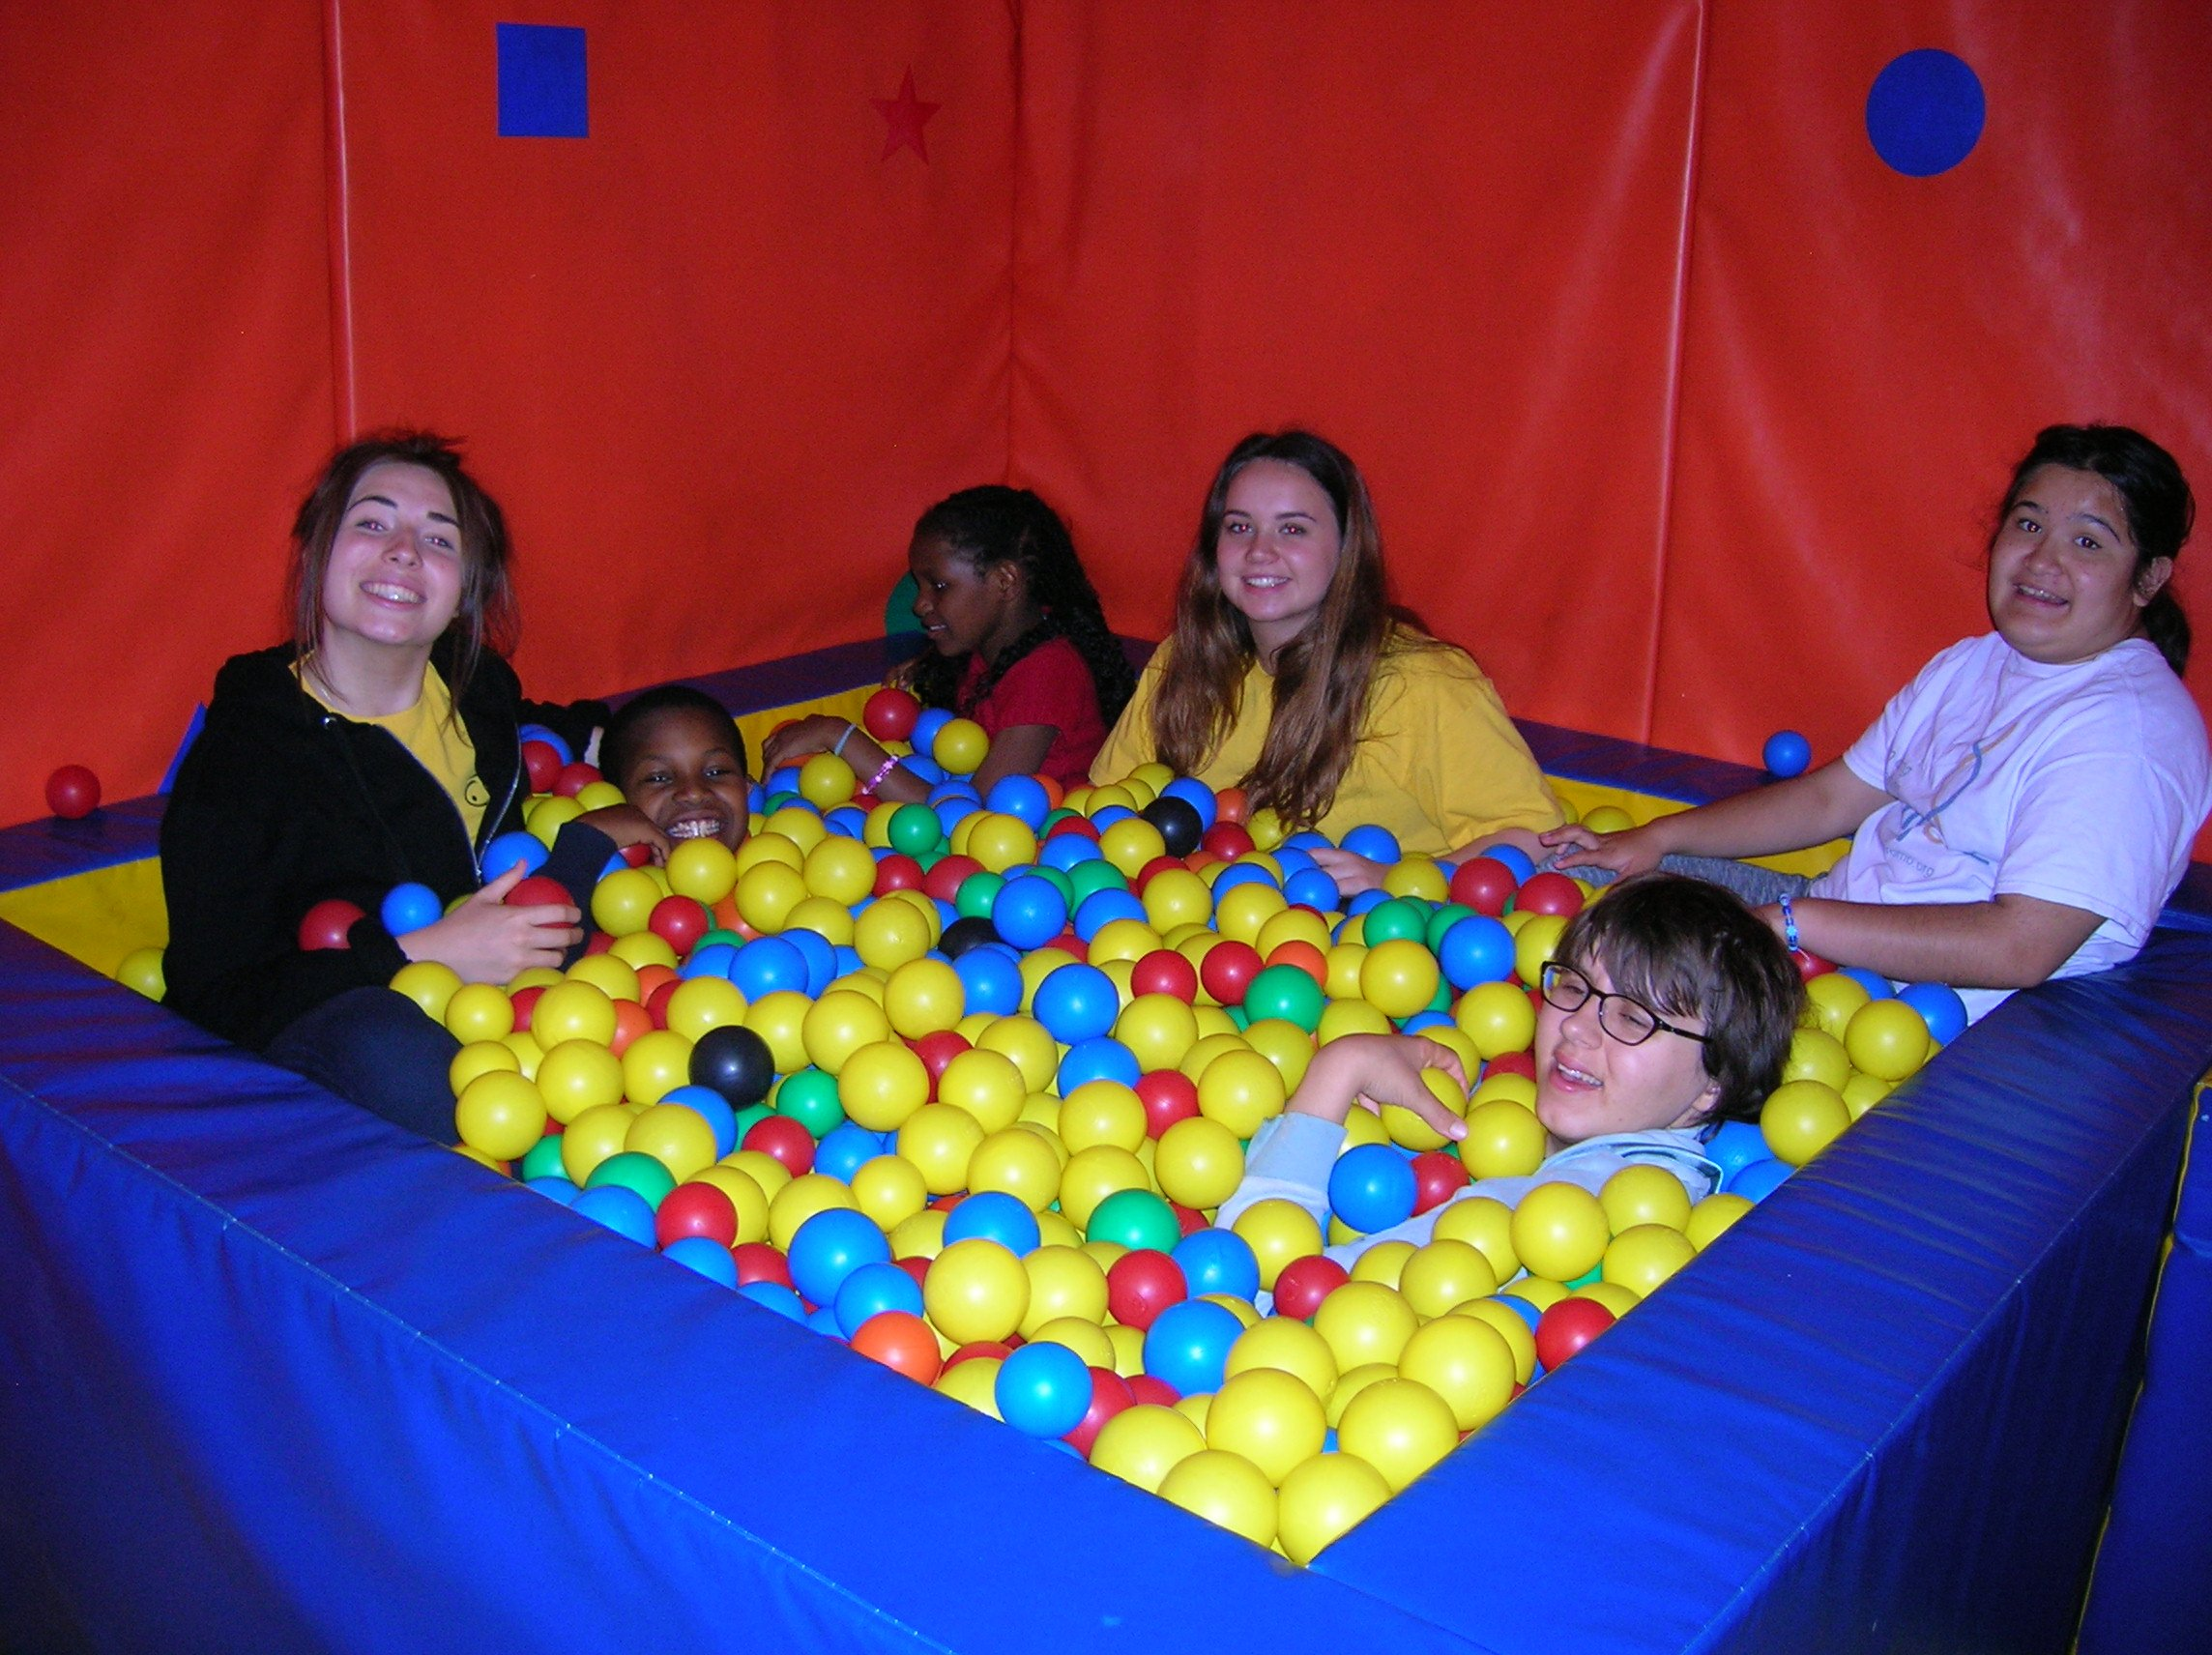 Staff also enjoying the soft play!